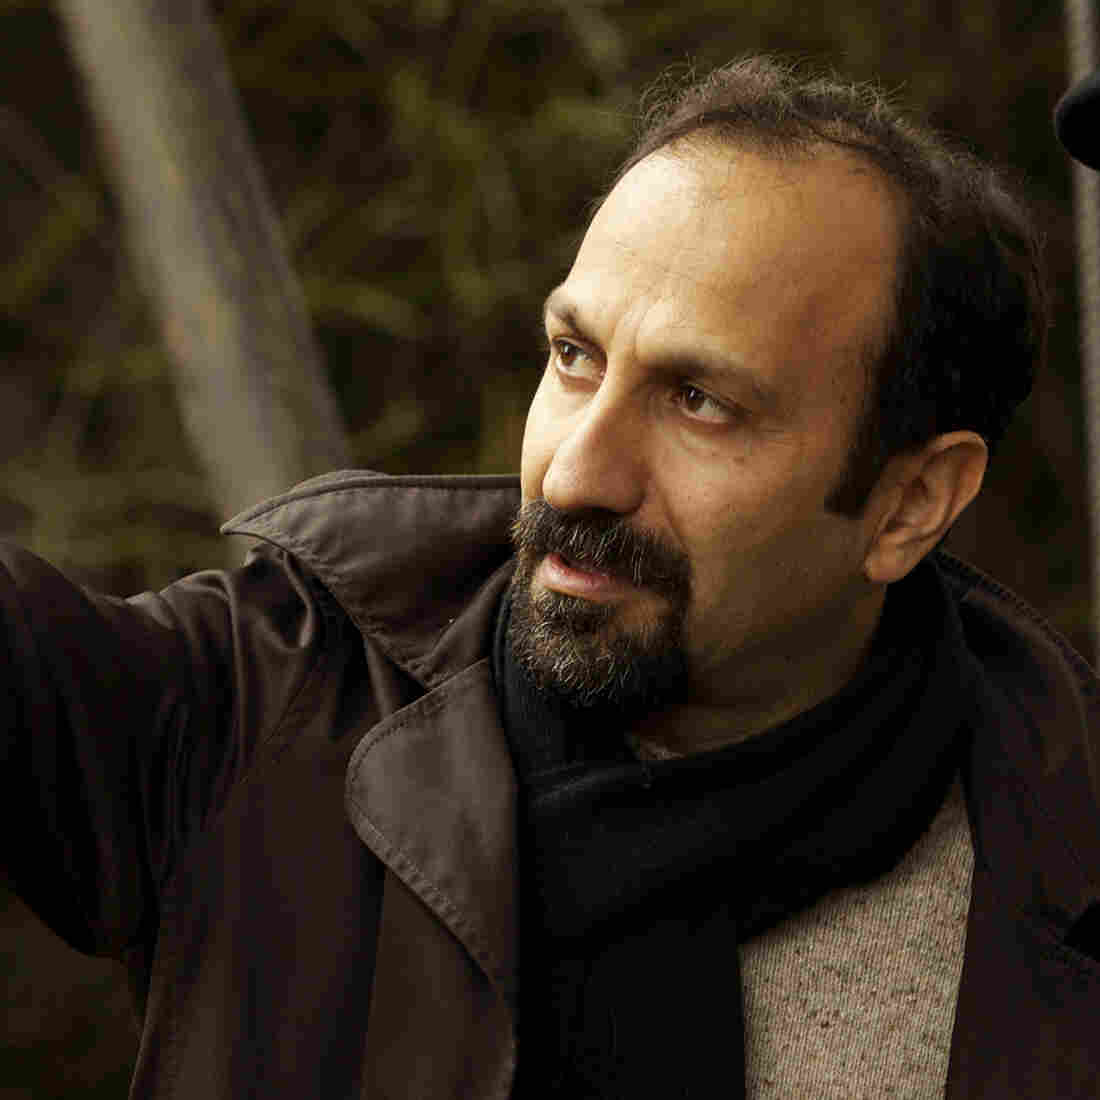 From Asghar Farhadi, More Questions Than Answers